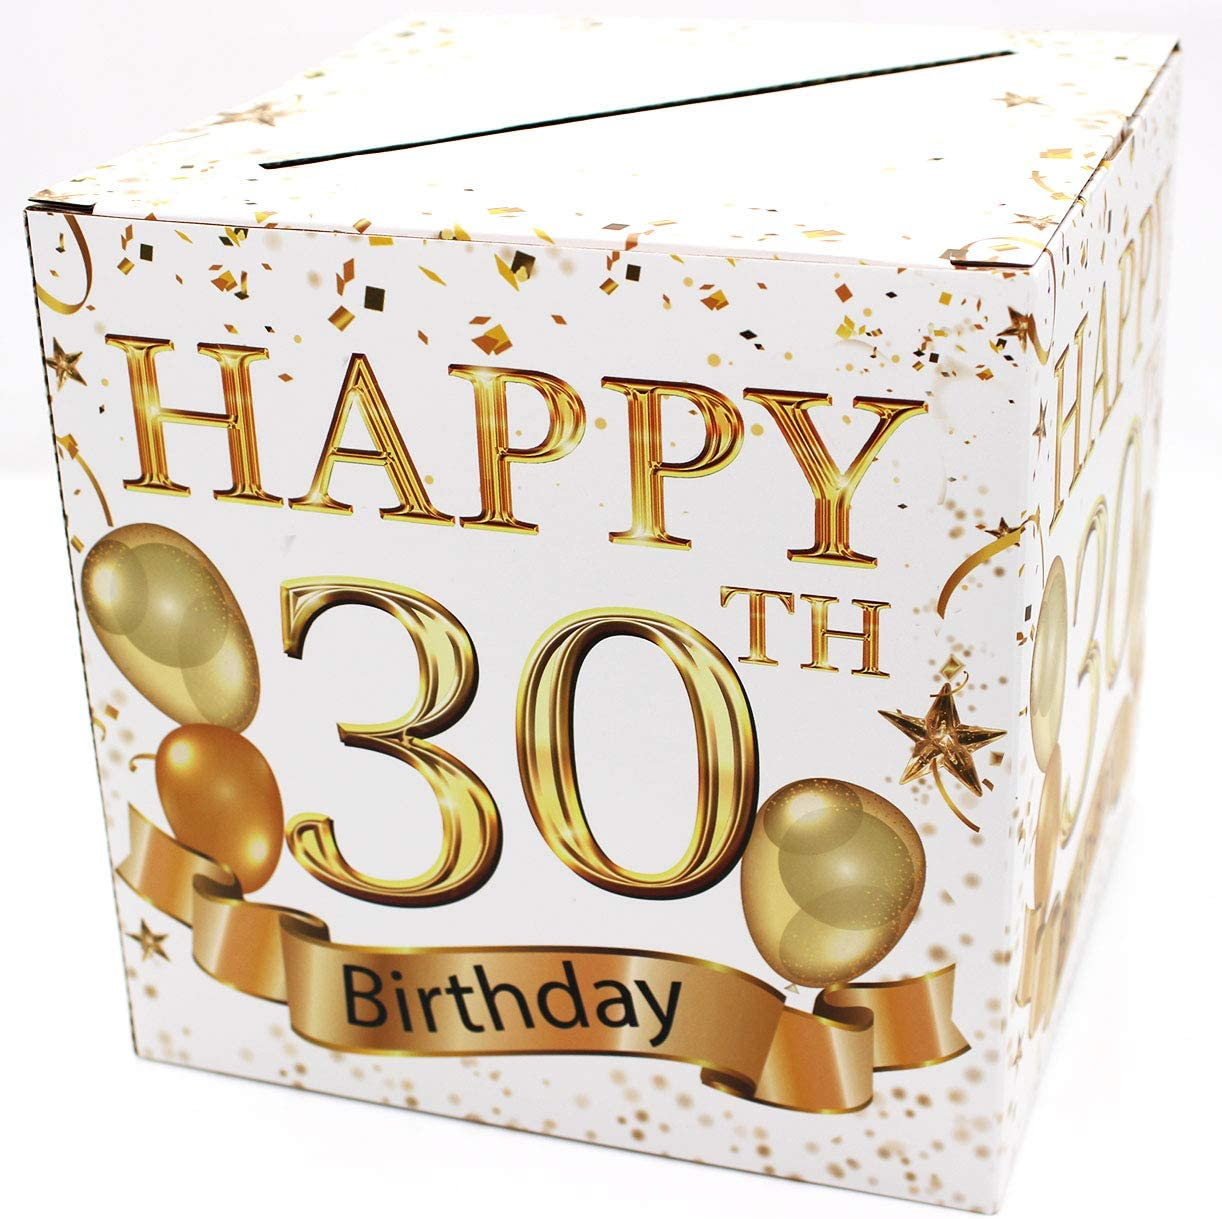 Buildinest 30th Birthday Party Decorations Box – Cheers to 30 Years, 30 Birthday Party Supplies – 1 Set(Box-30-WHT)